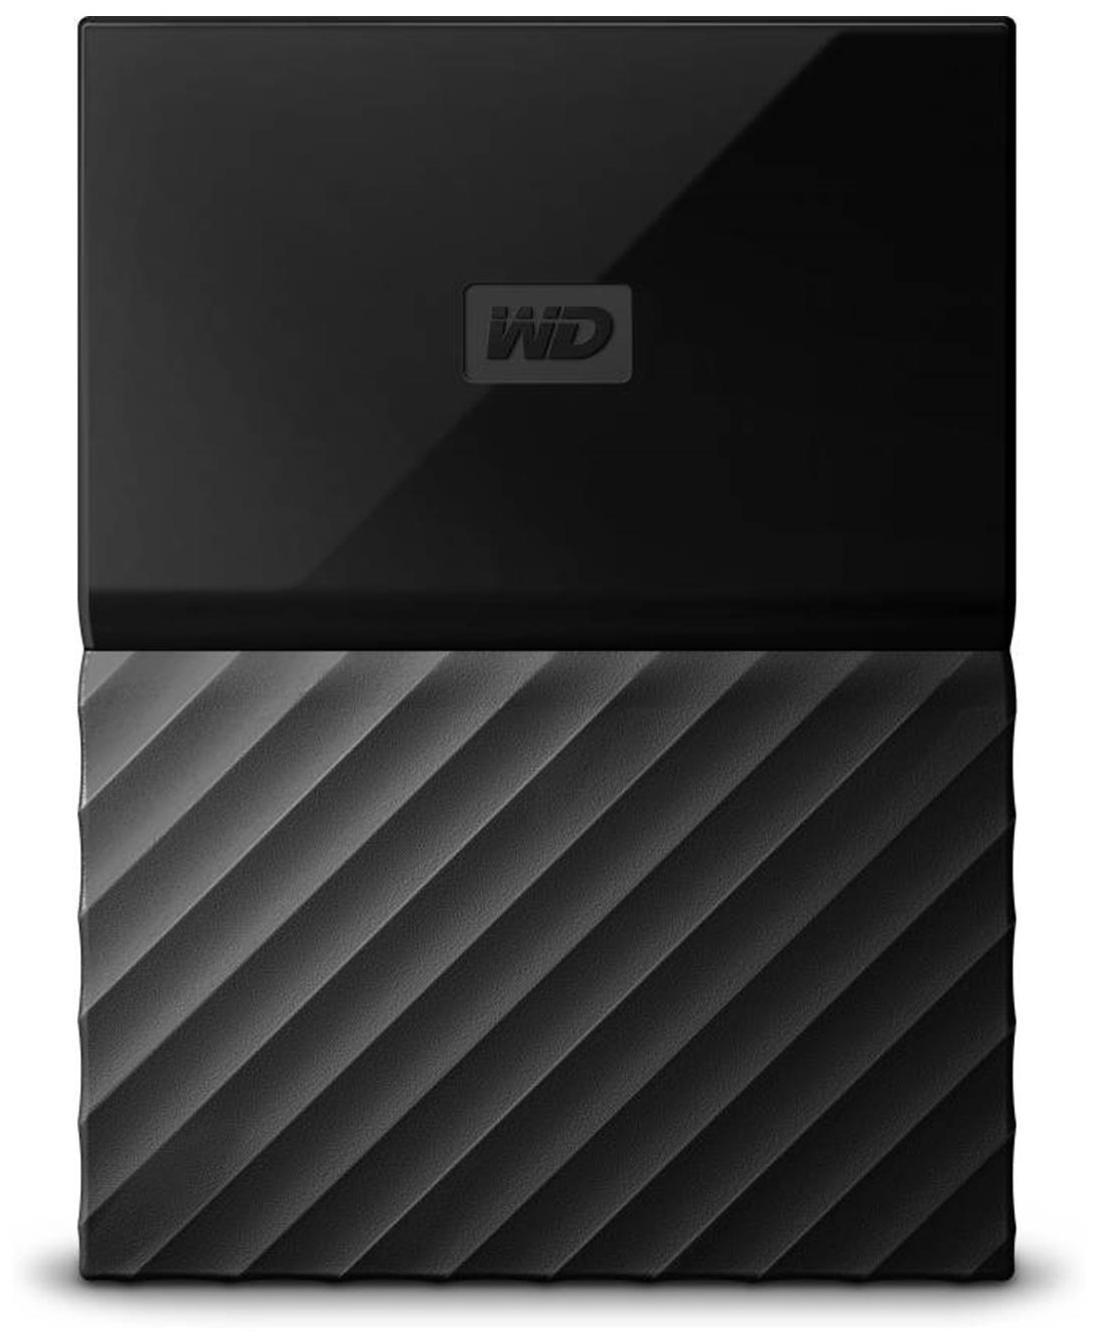 WD My Passport WDBYNN0010BBK 1 TB Portable External Hard Drive (Black)